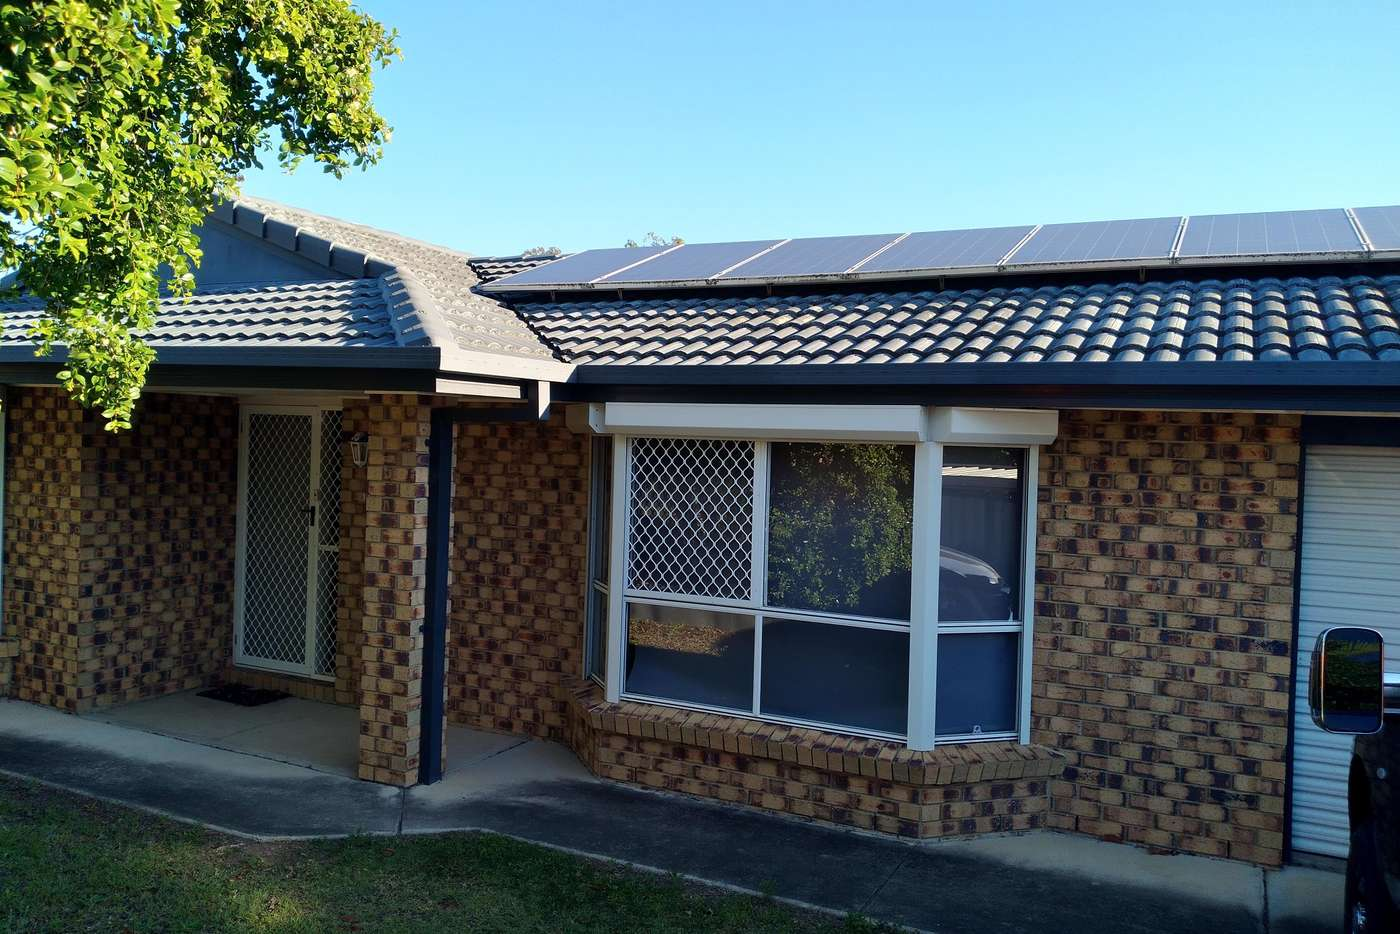 Main view of Homely house listing, 10 Riseborough Crescent, Crestmead QLD 4132